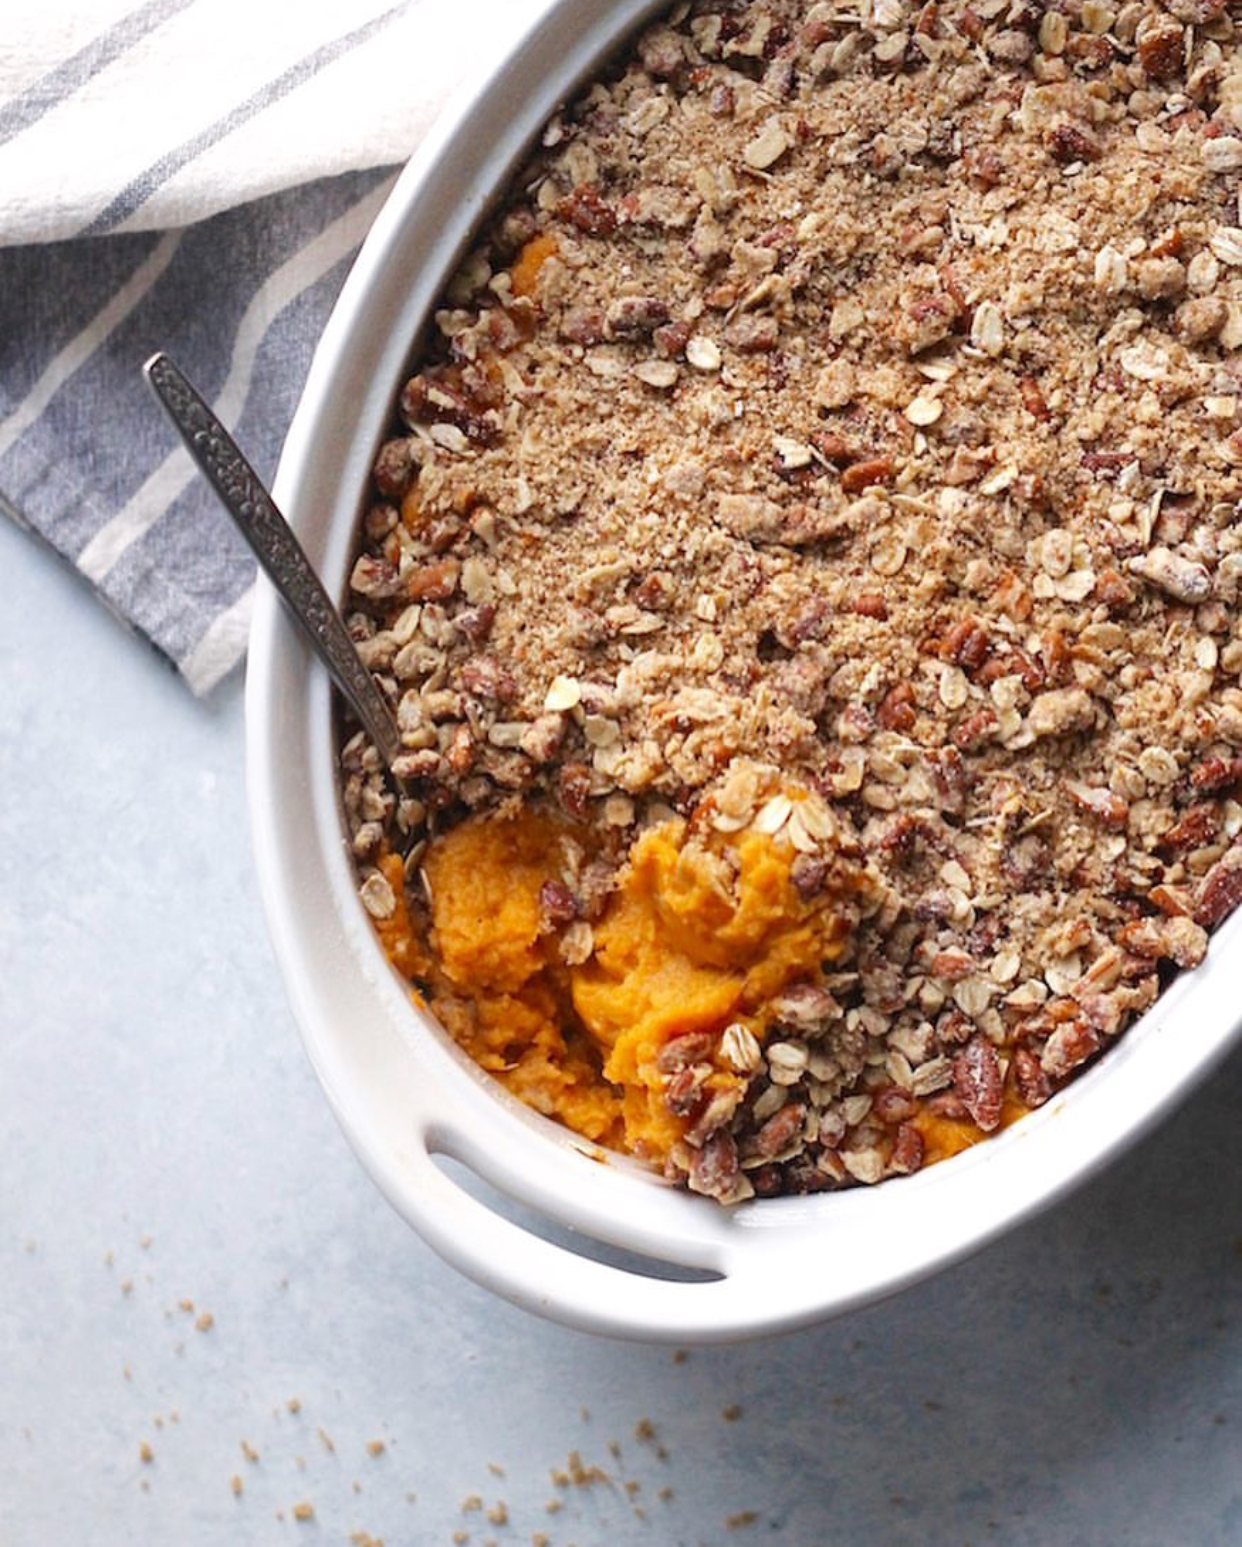 Vegan Sweet Potato Casserole - This casserole looks incredible. What is a Thanksgiving dinner with out some sweet potato love?!I love following @hummusapien for her tasty recipes, and of course, her Columbus pride! If you haven't checked out Alchemy Juice Bar or TRISM - you're missing out!Recipe:https://www.hummusapien.com/vegan-sweet-potato-casserole/